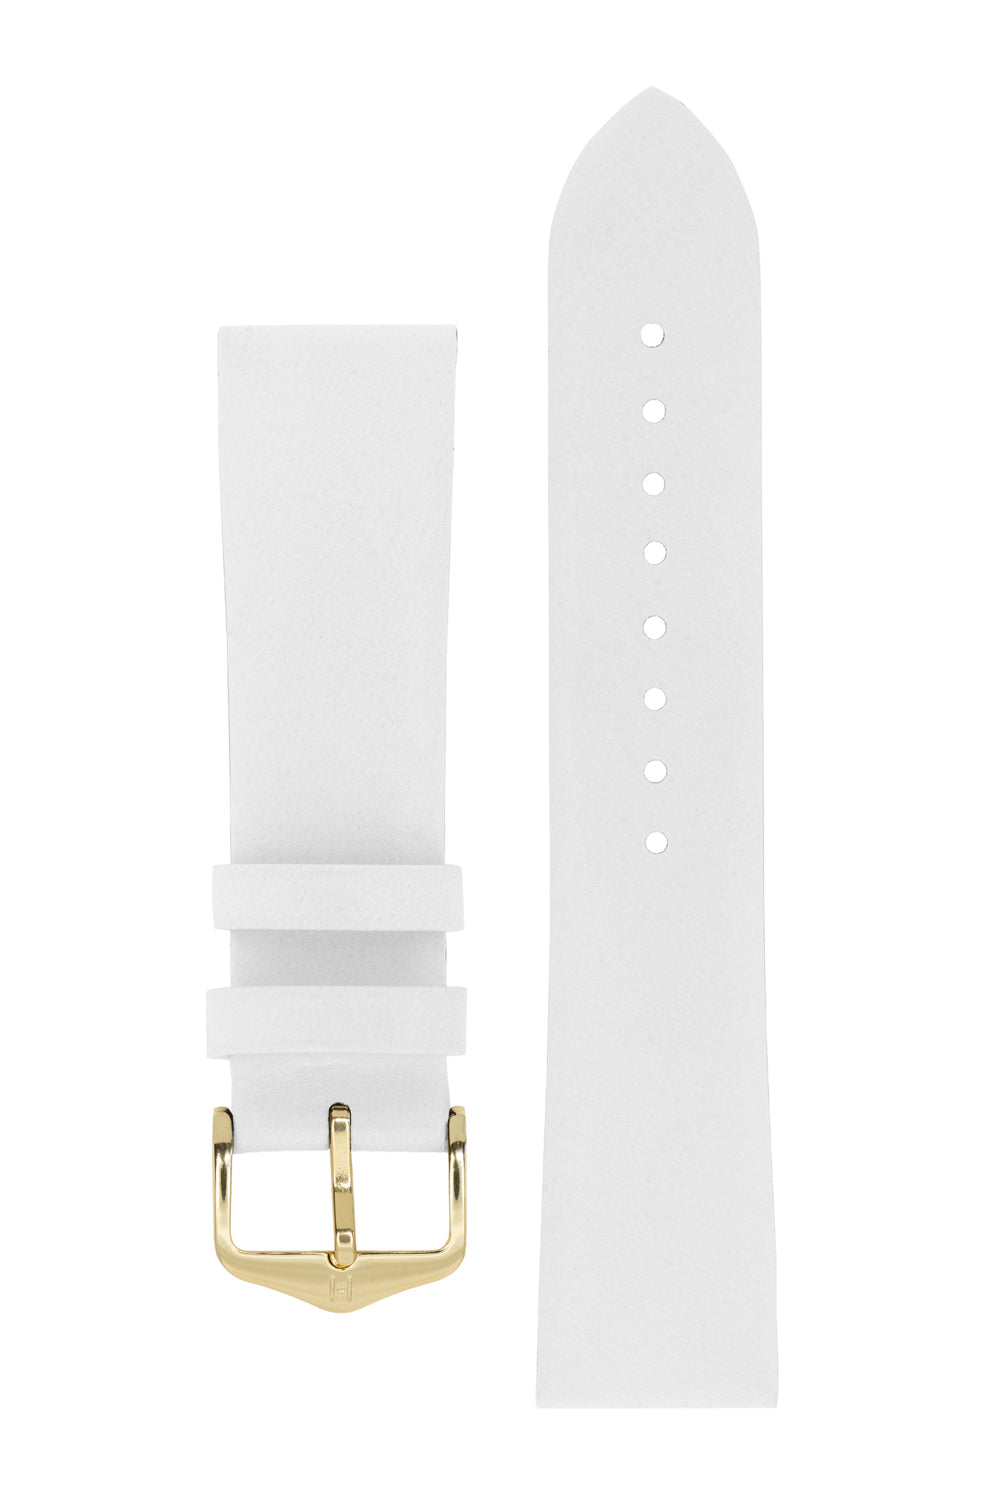 Hirsch DIAMOND CALF Leather Watch Strap in WHITE